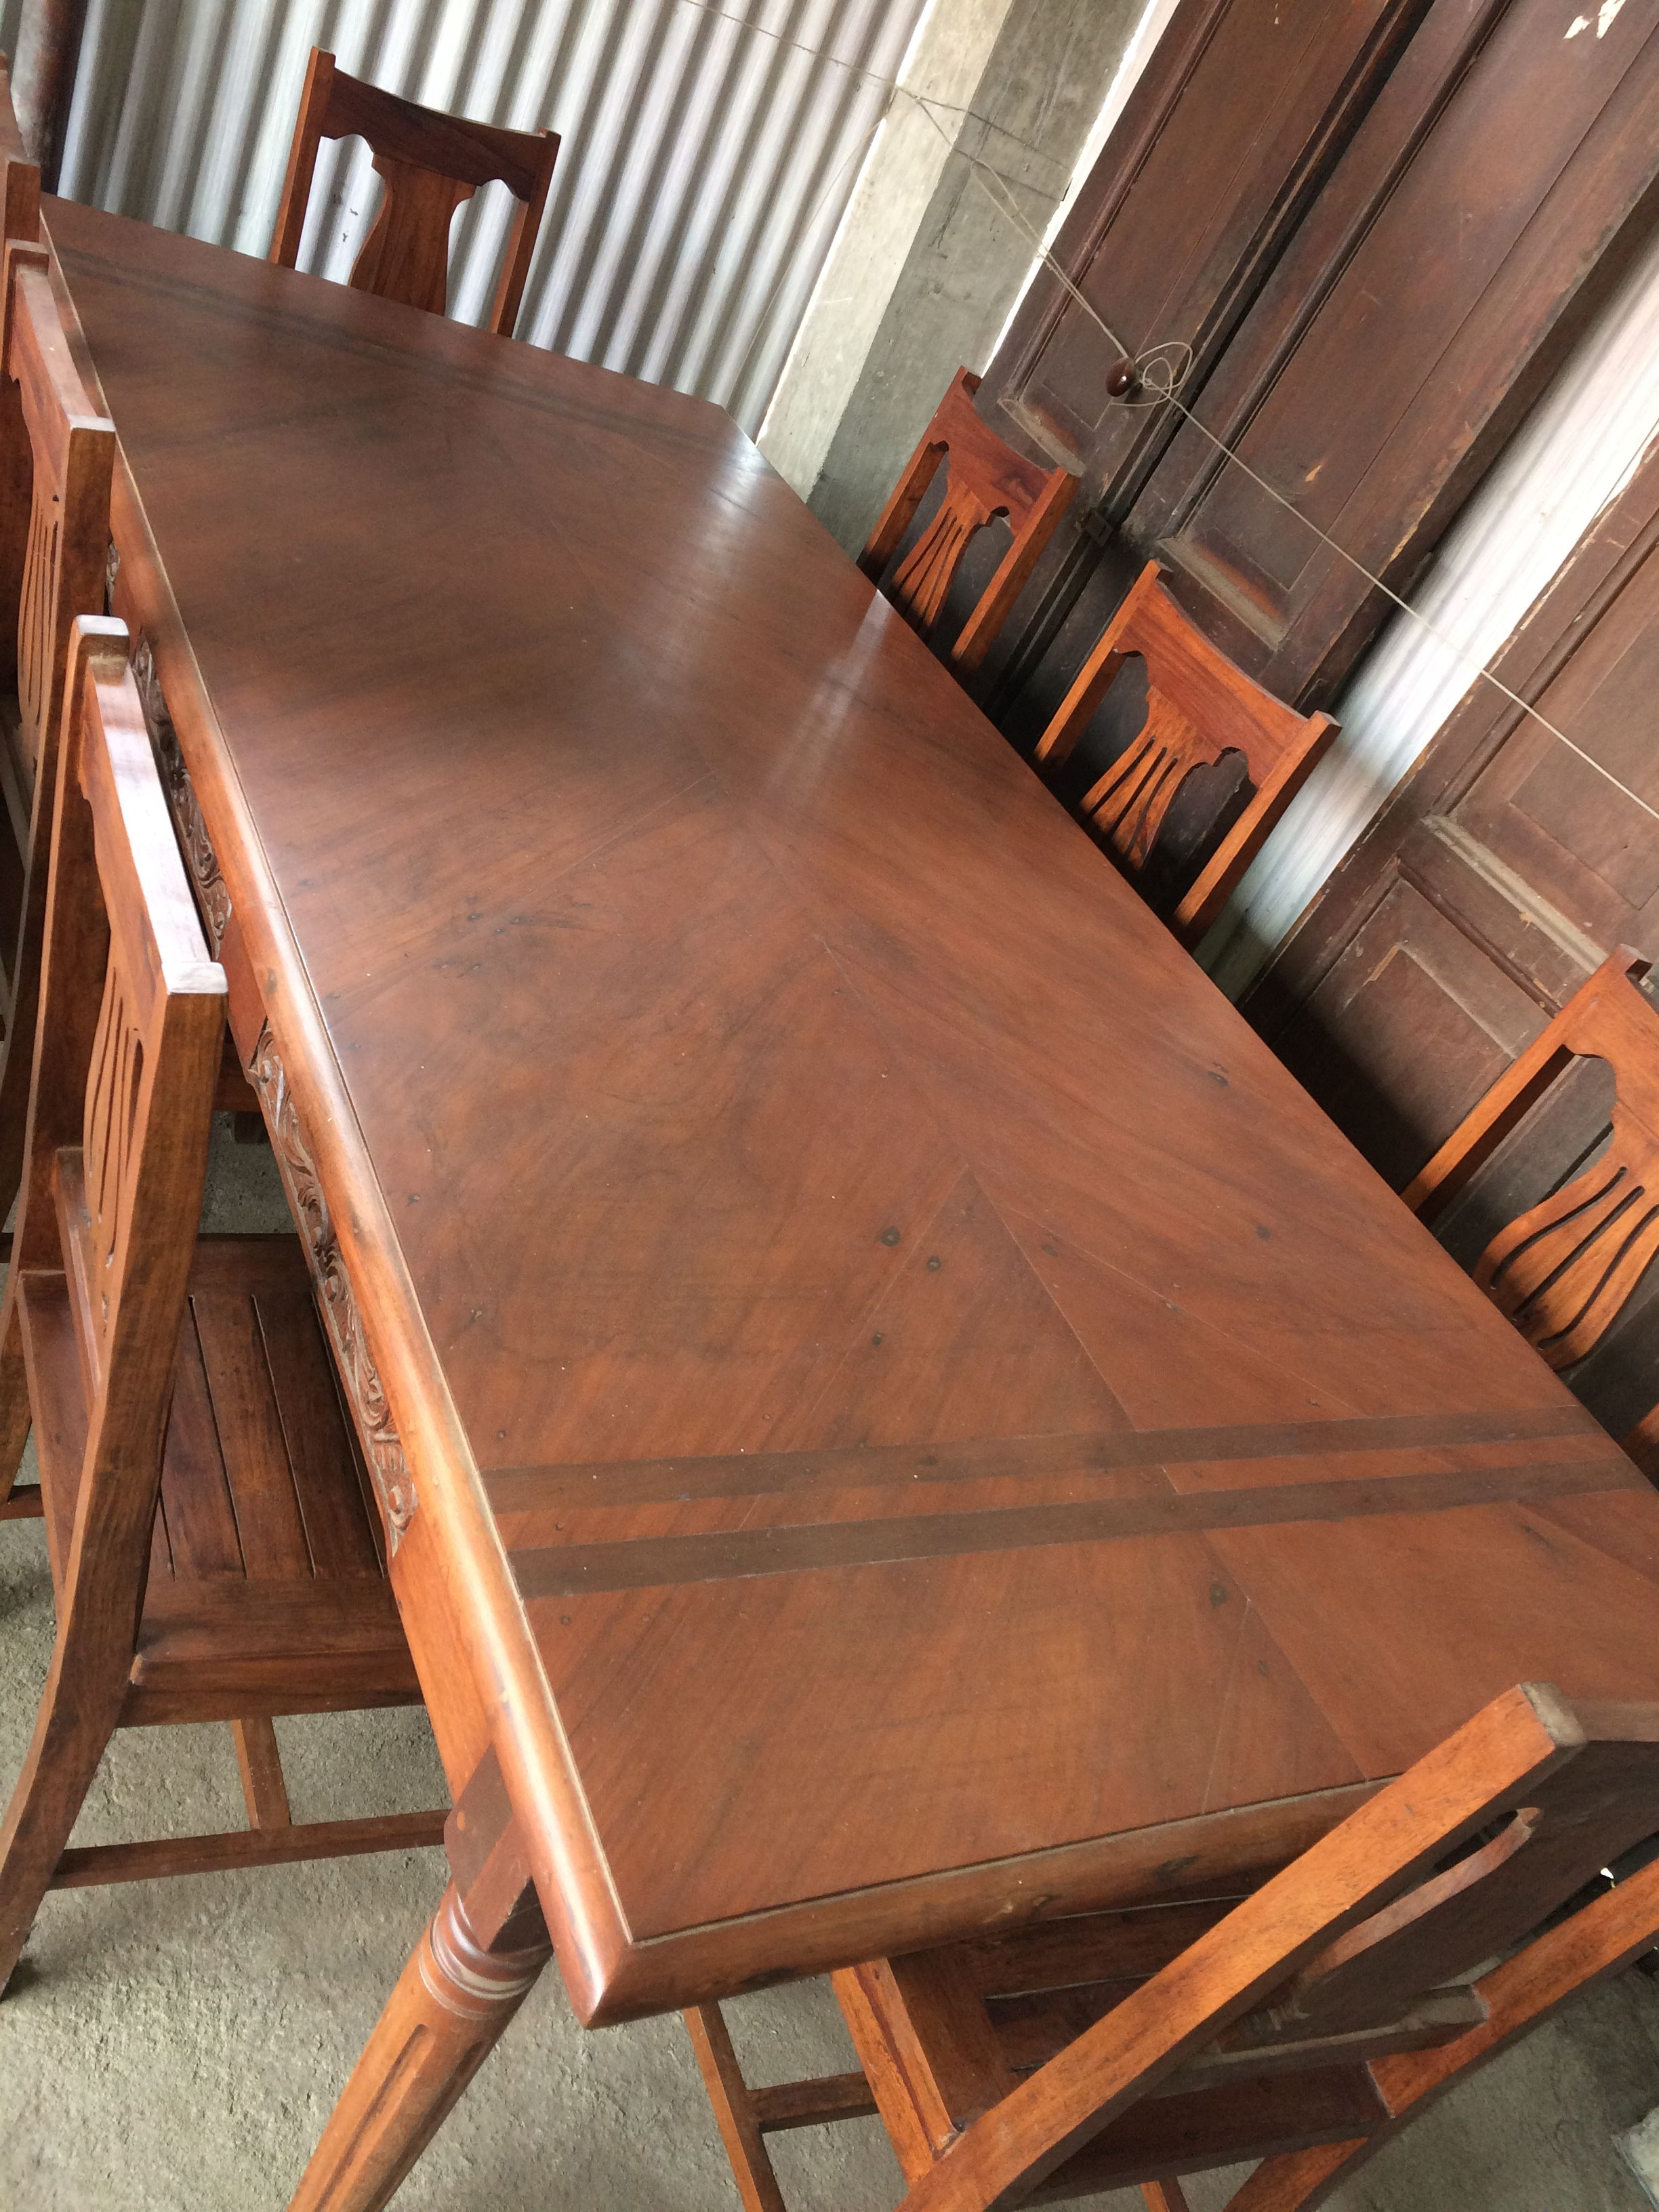 My Vintage 8 Seater Narra Dining Table Inlaid Wood